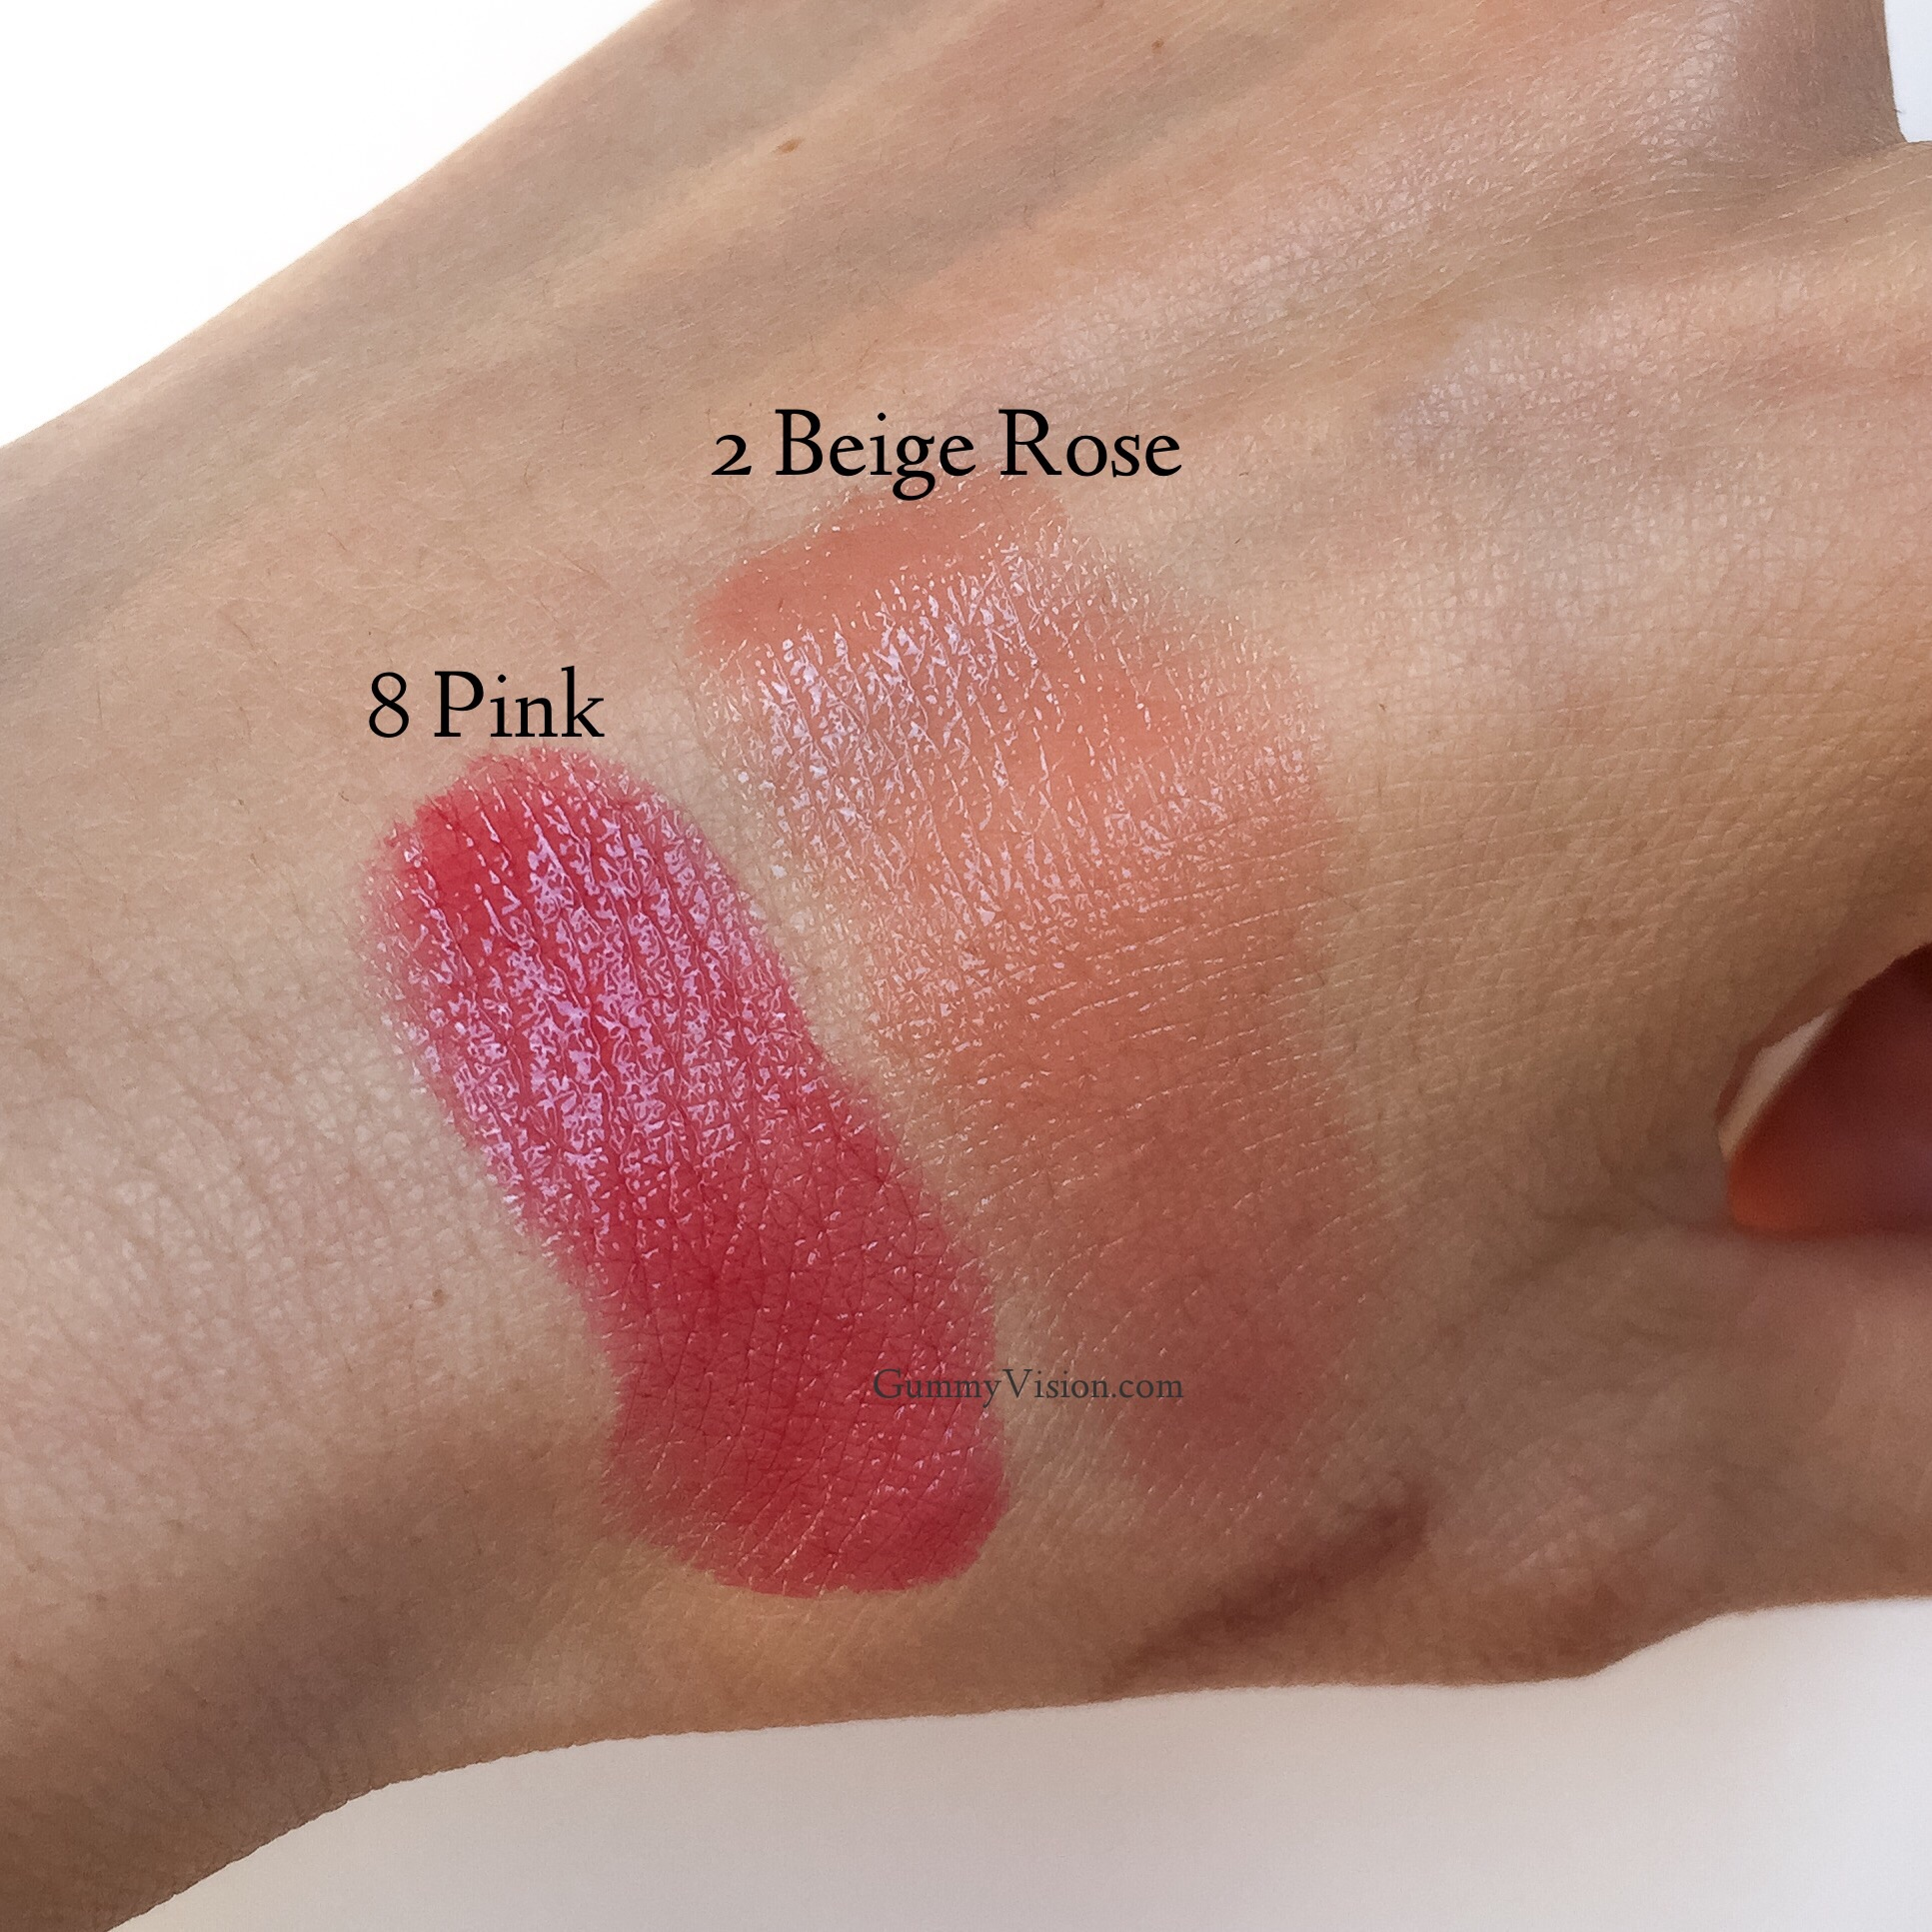 Swatched: Sisley Phyto Lip Gloss in 2 Beige Rose & 8 Pink - gummyvision.com